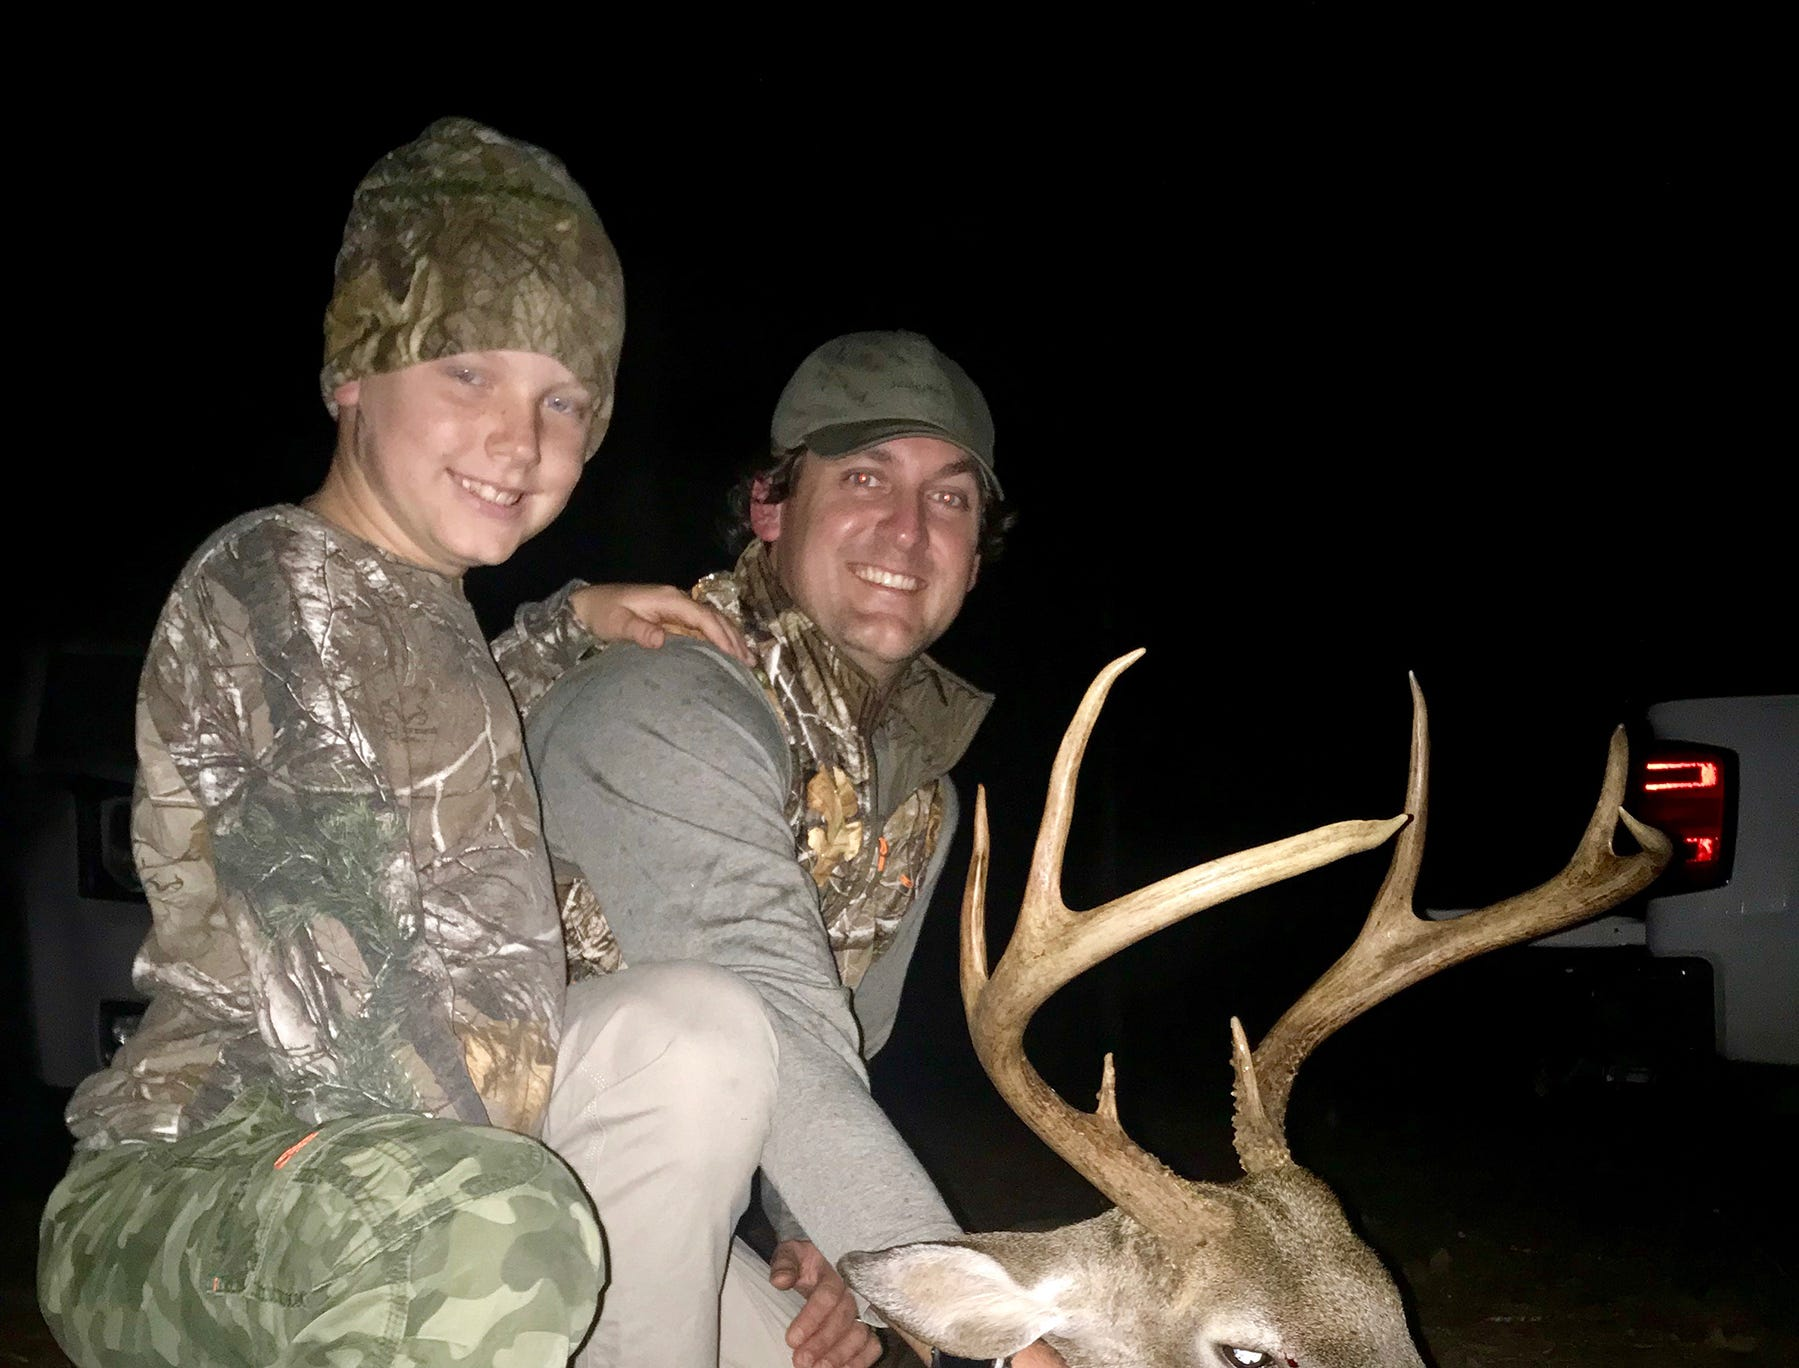 Garner Russum, 8, of Hattiesburg, harvested his first deer this season. Russum took the 8-point while hunting with his father, Hunter Russum.